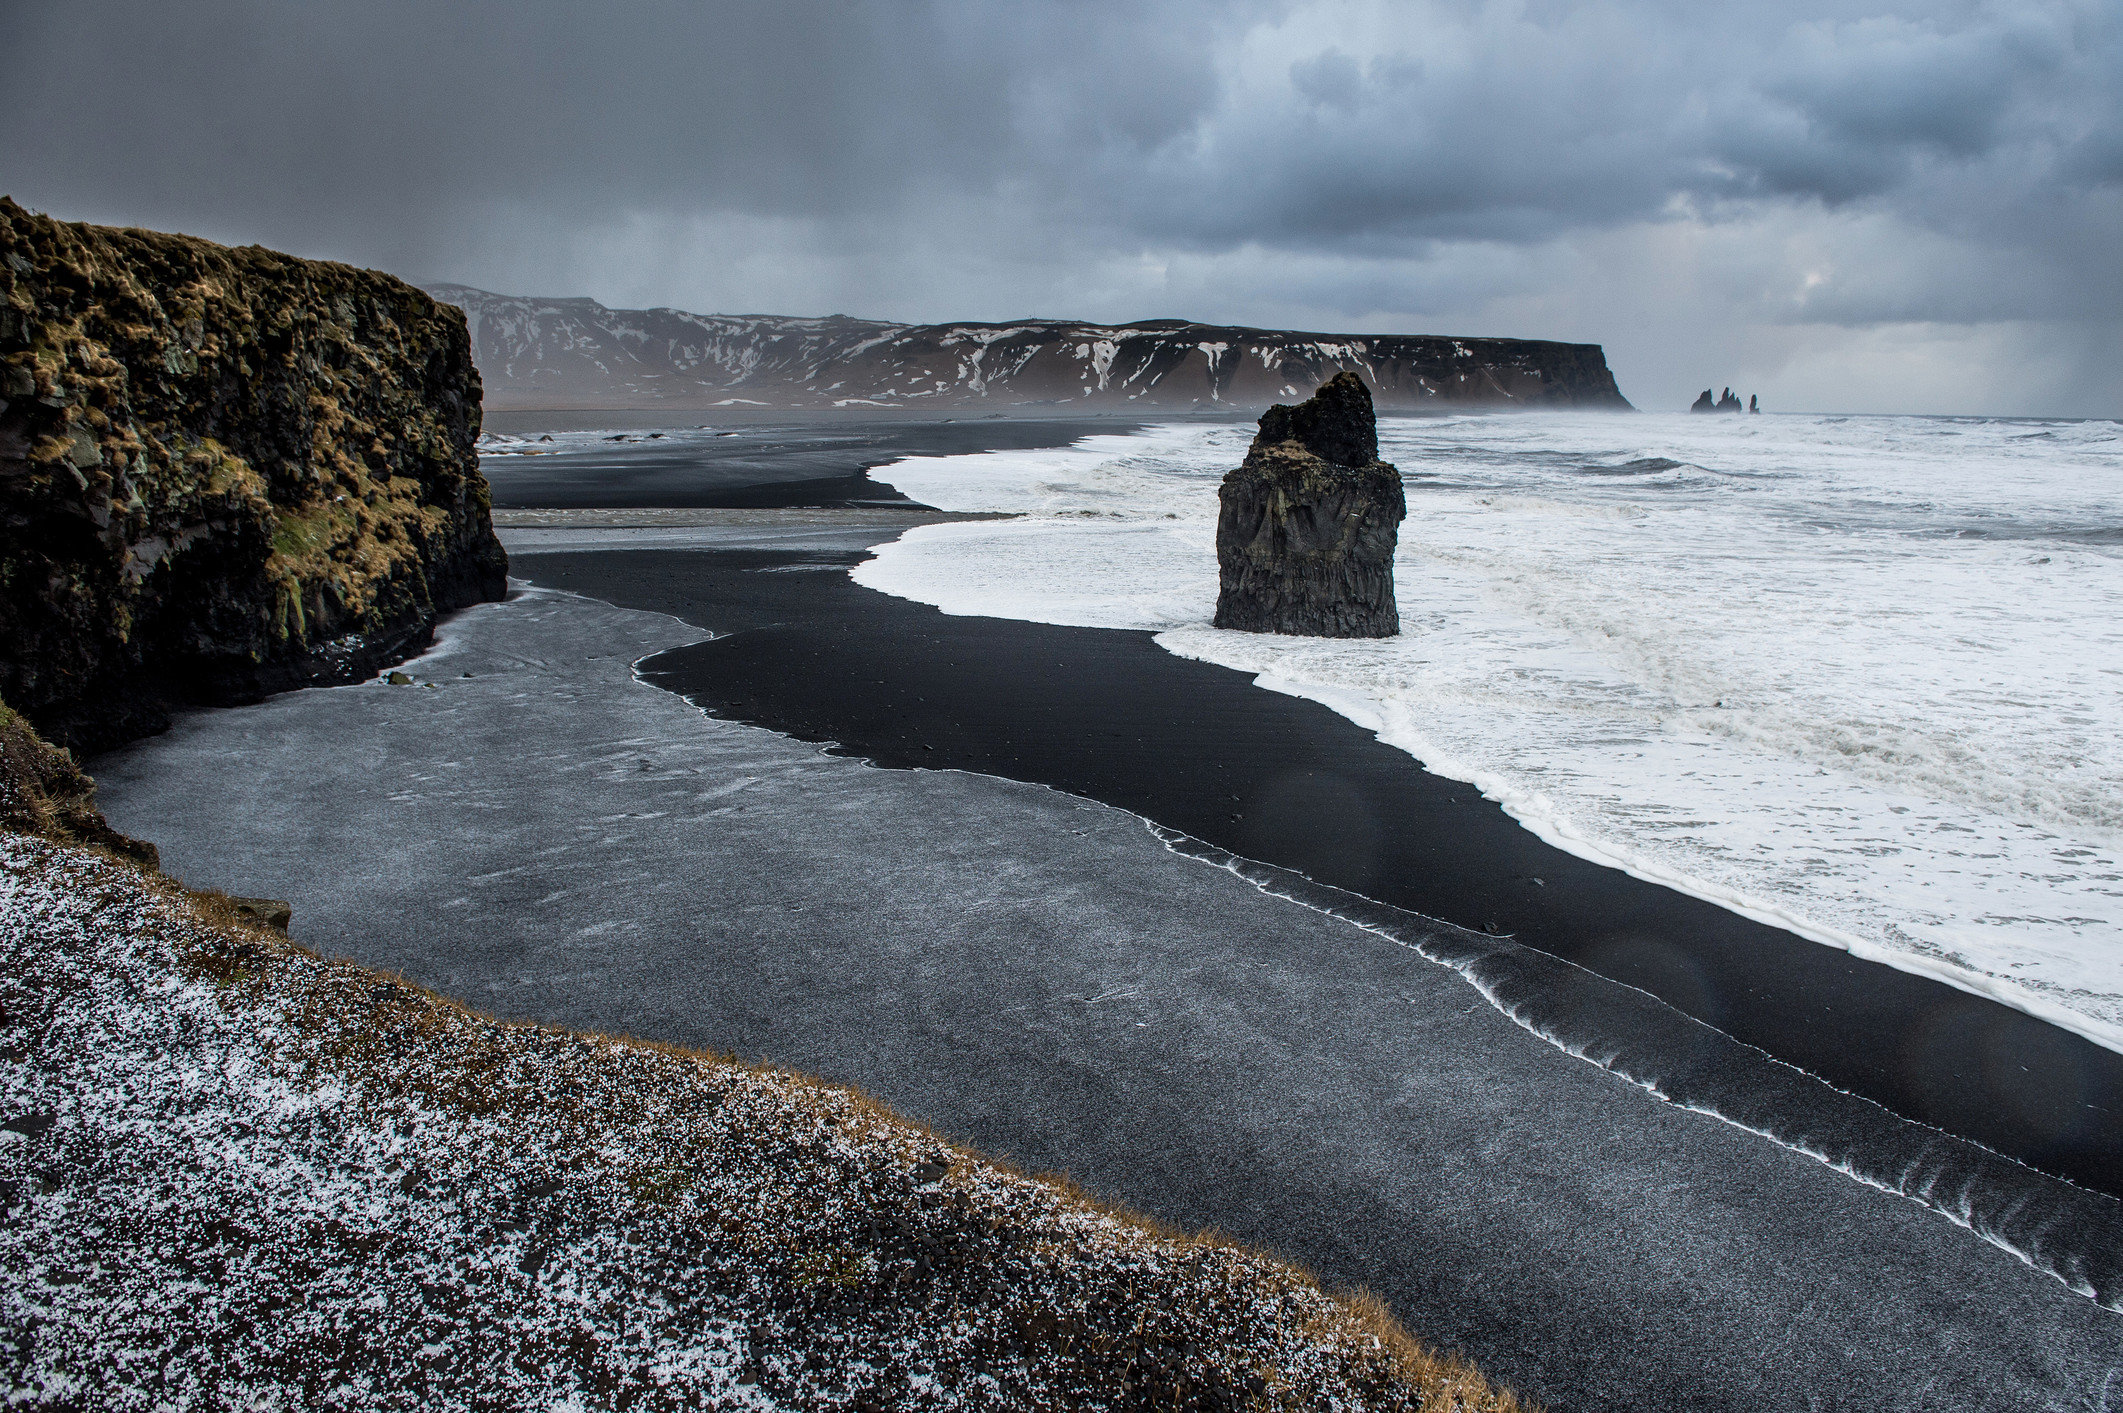 Iceland Outdoors + Adventure Road Trips sky water outdoor Nature body of water Coast Sea coastal and oceanic landforms shore Ocean wave headland cliff terrain rock wind wave cloud Beach promontory tide landscape formation